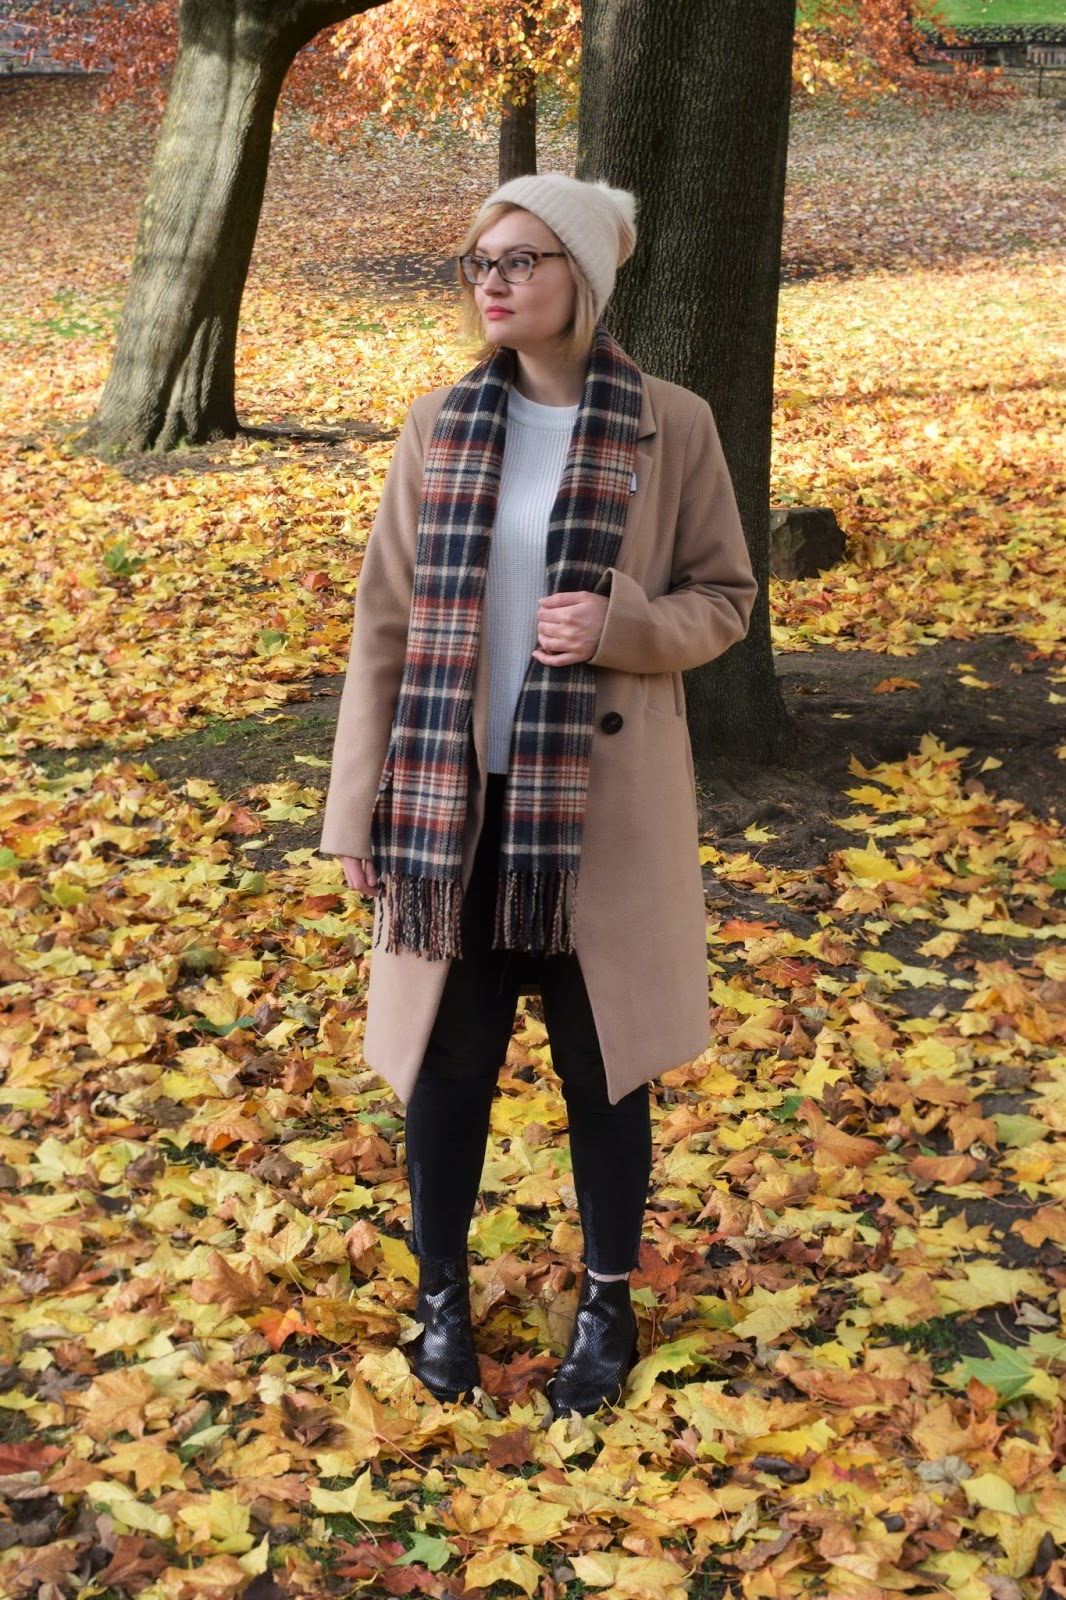 Scottish winter style trend, tartan scarf, The Whitepepper, The Sad Ghost Club, Edinburgh blogger photoshoot, simple chic scottish style, UK style blogger, camel coat, how to layer for winter in Scotland, #edfashion, #edinburghbloggers